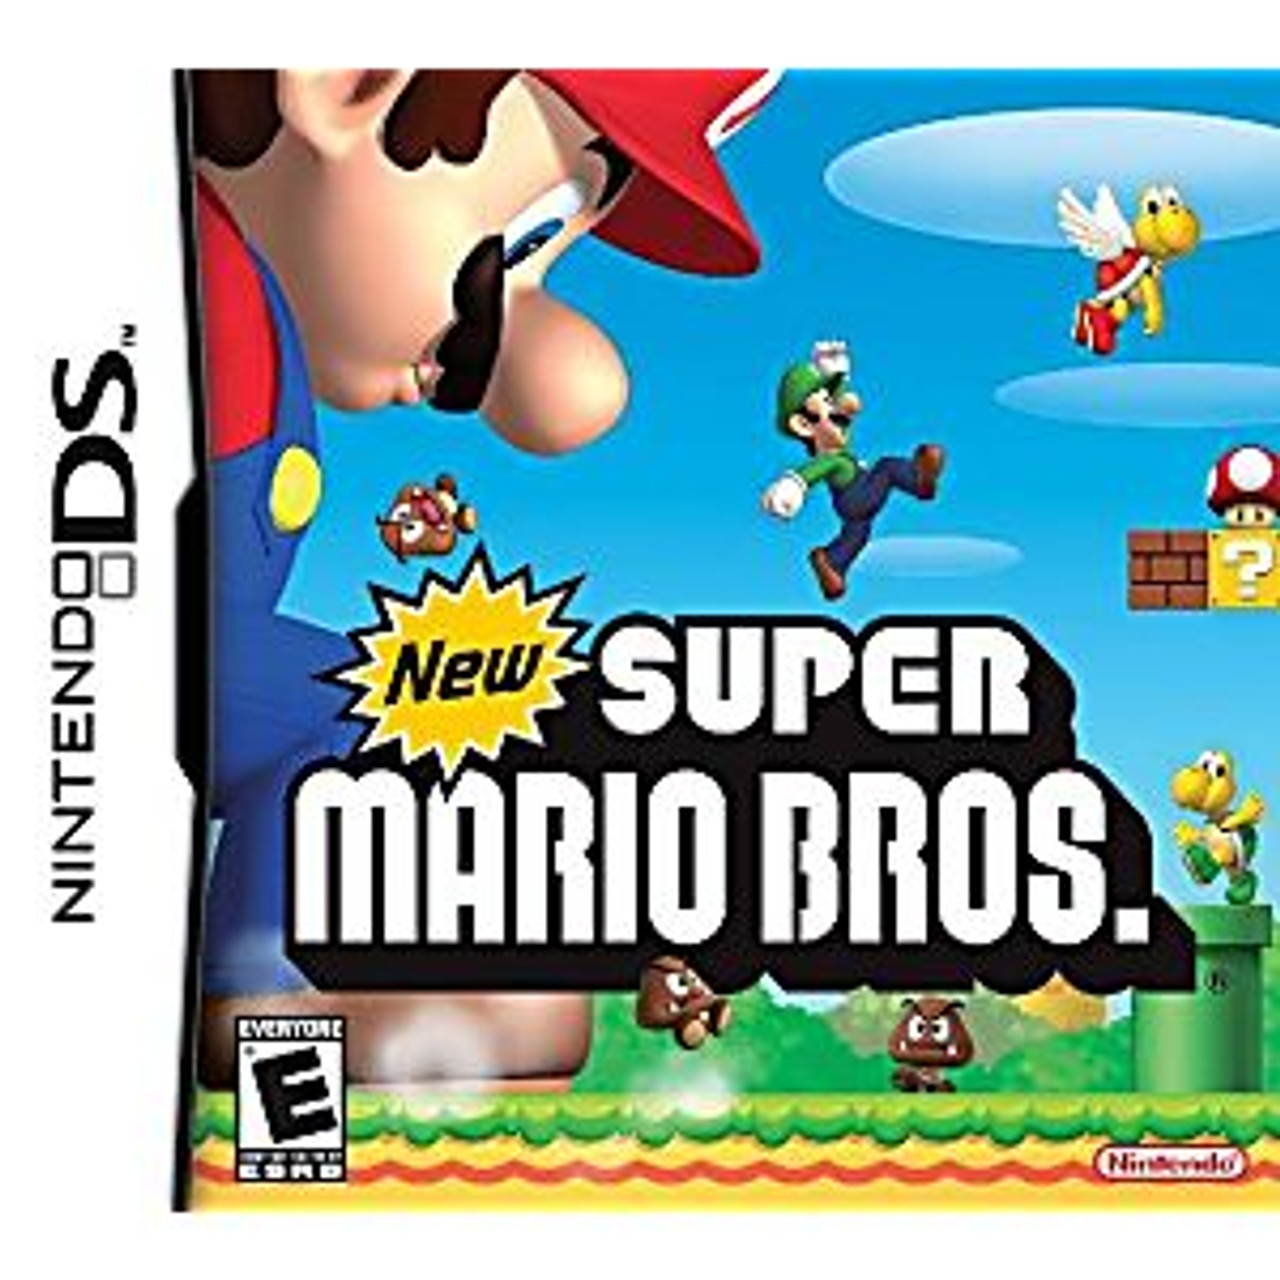 NEW SUPER MARIO BROTHERS [E] - NDS